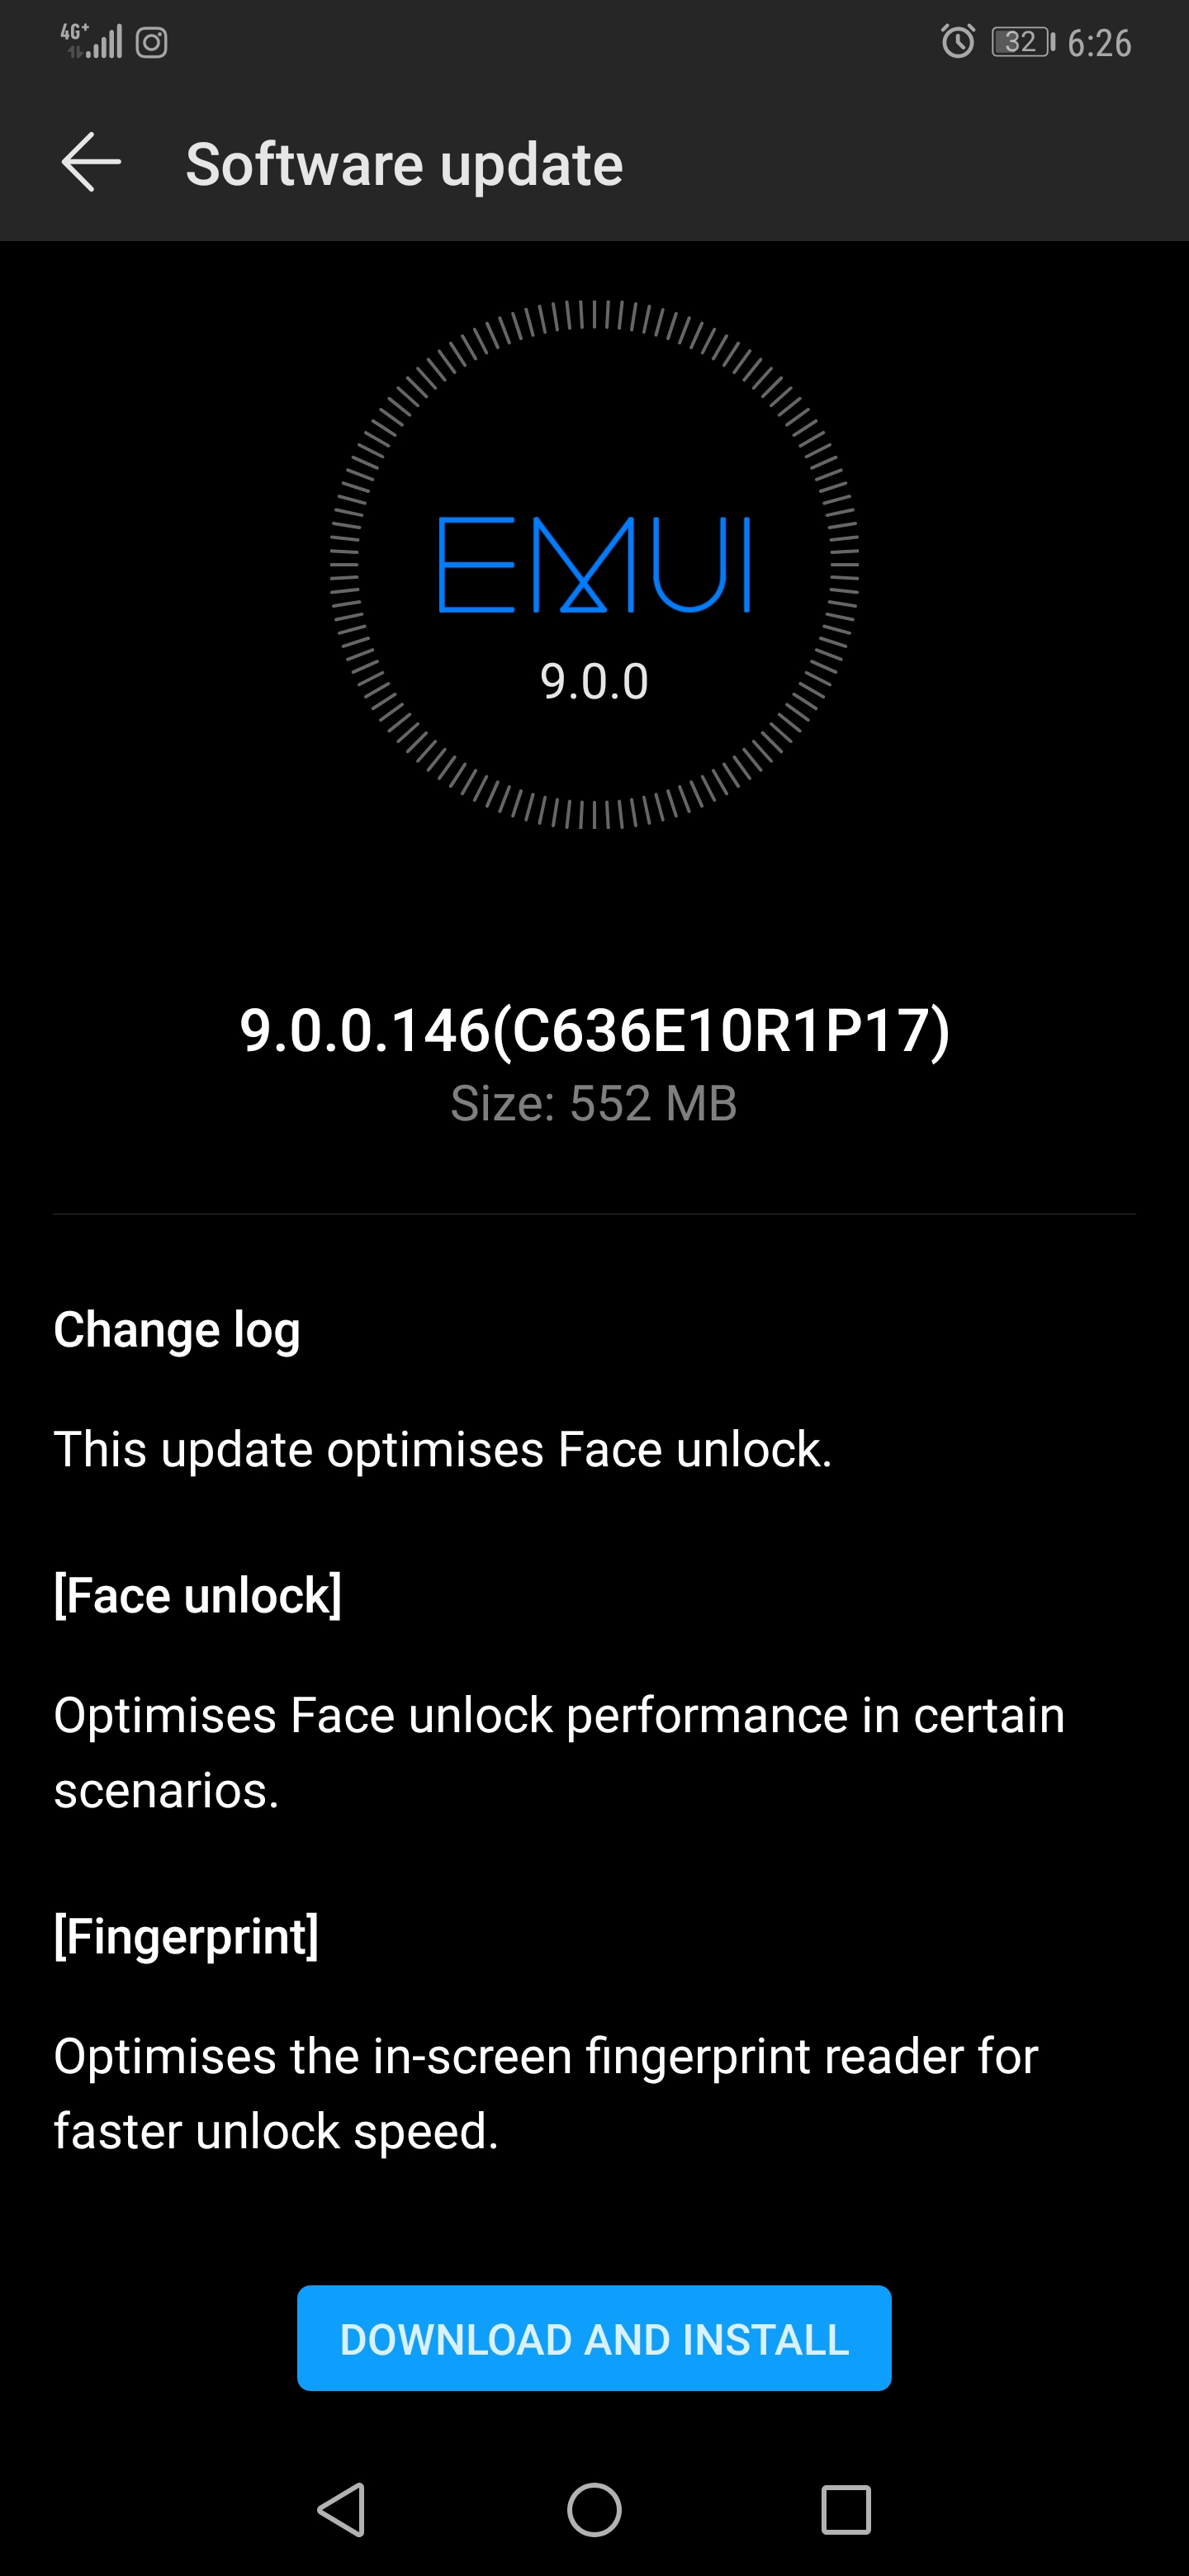 Huawei Mate 20 Pro update brings improvements to the Face Unlock and